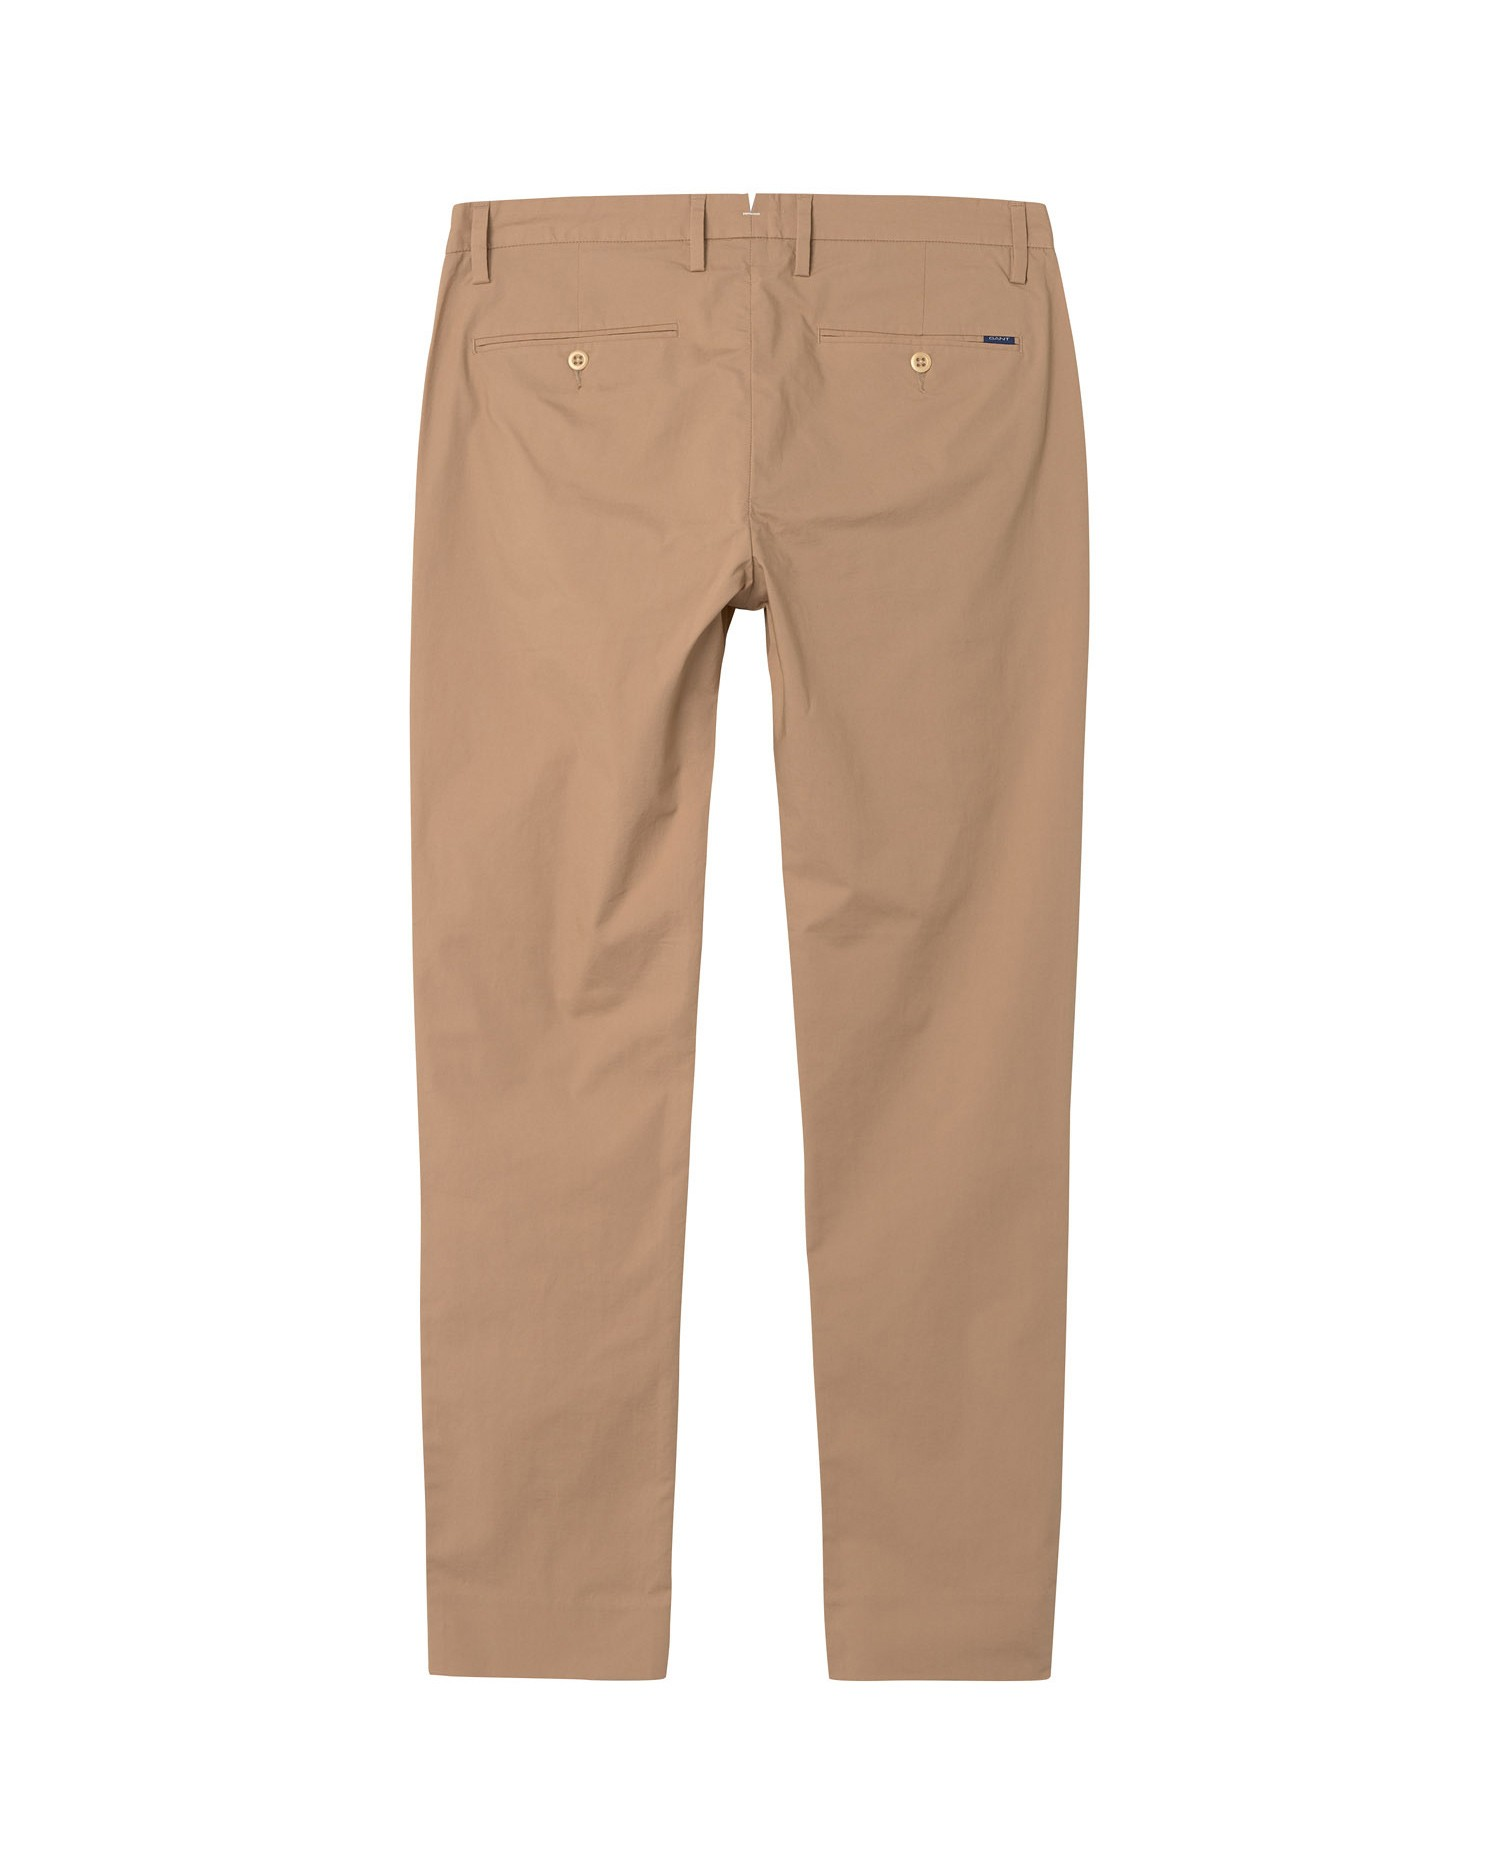 GANT Men's Slim Pima Poplin Chino - 1501256